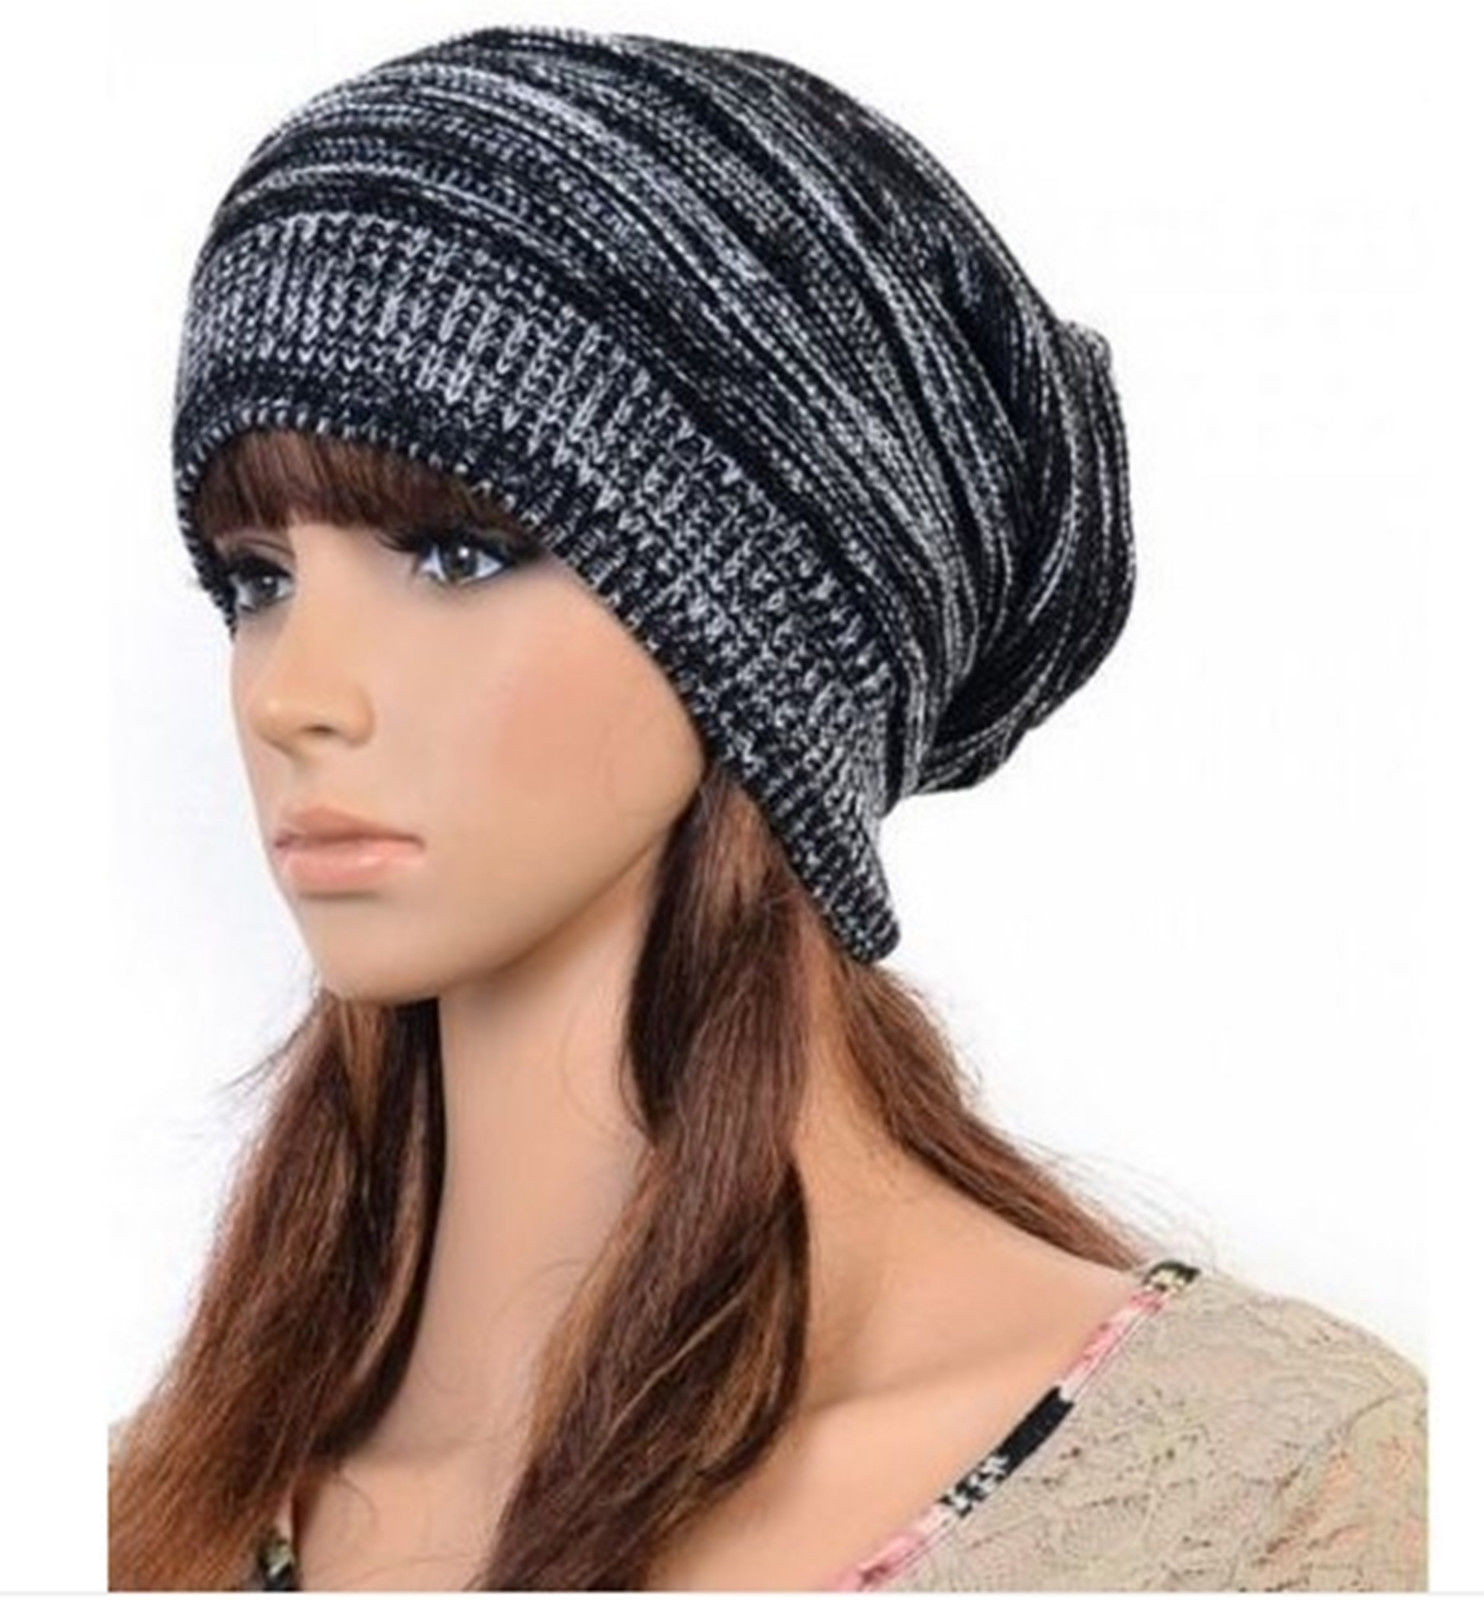 Womens Knit Hats Best Of New Uni Womens Mens Knit Baggy Beanie Hat Winter Warm Of Innovative 50 Images Womens Knit Hats